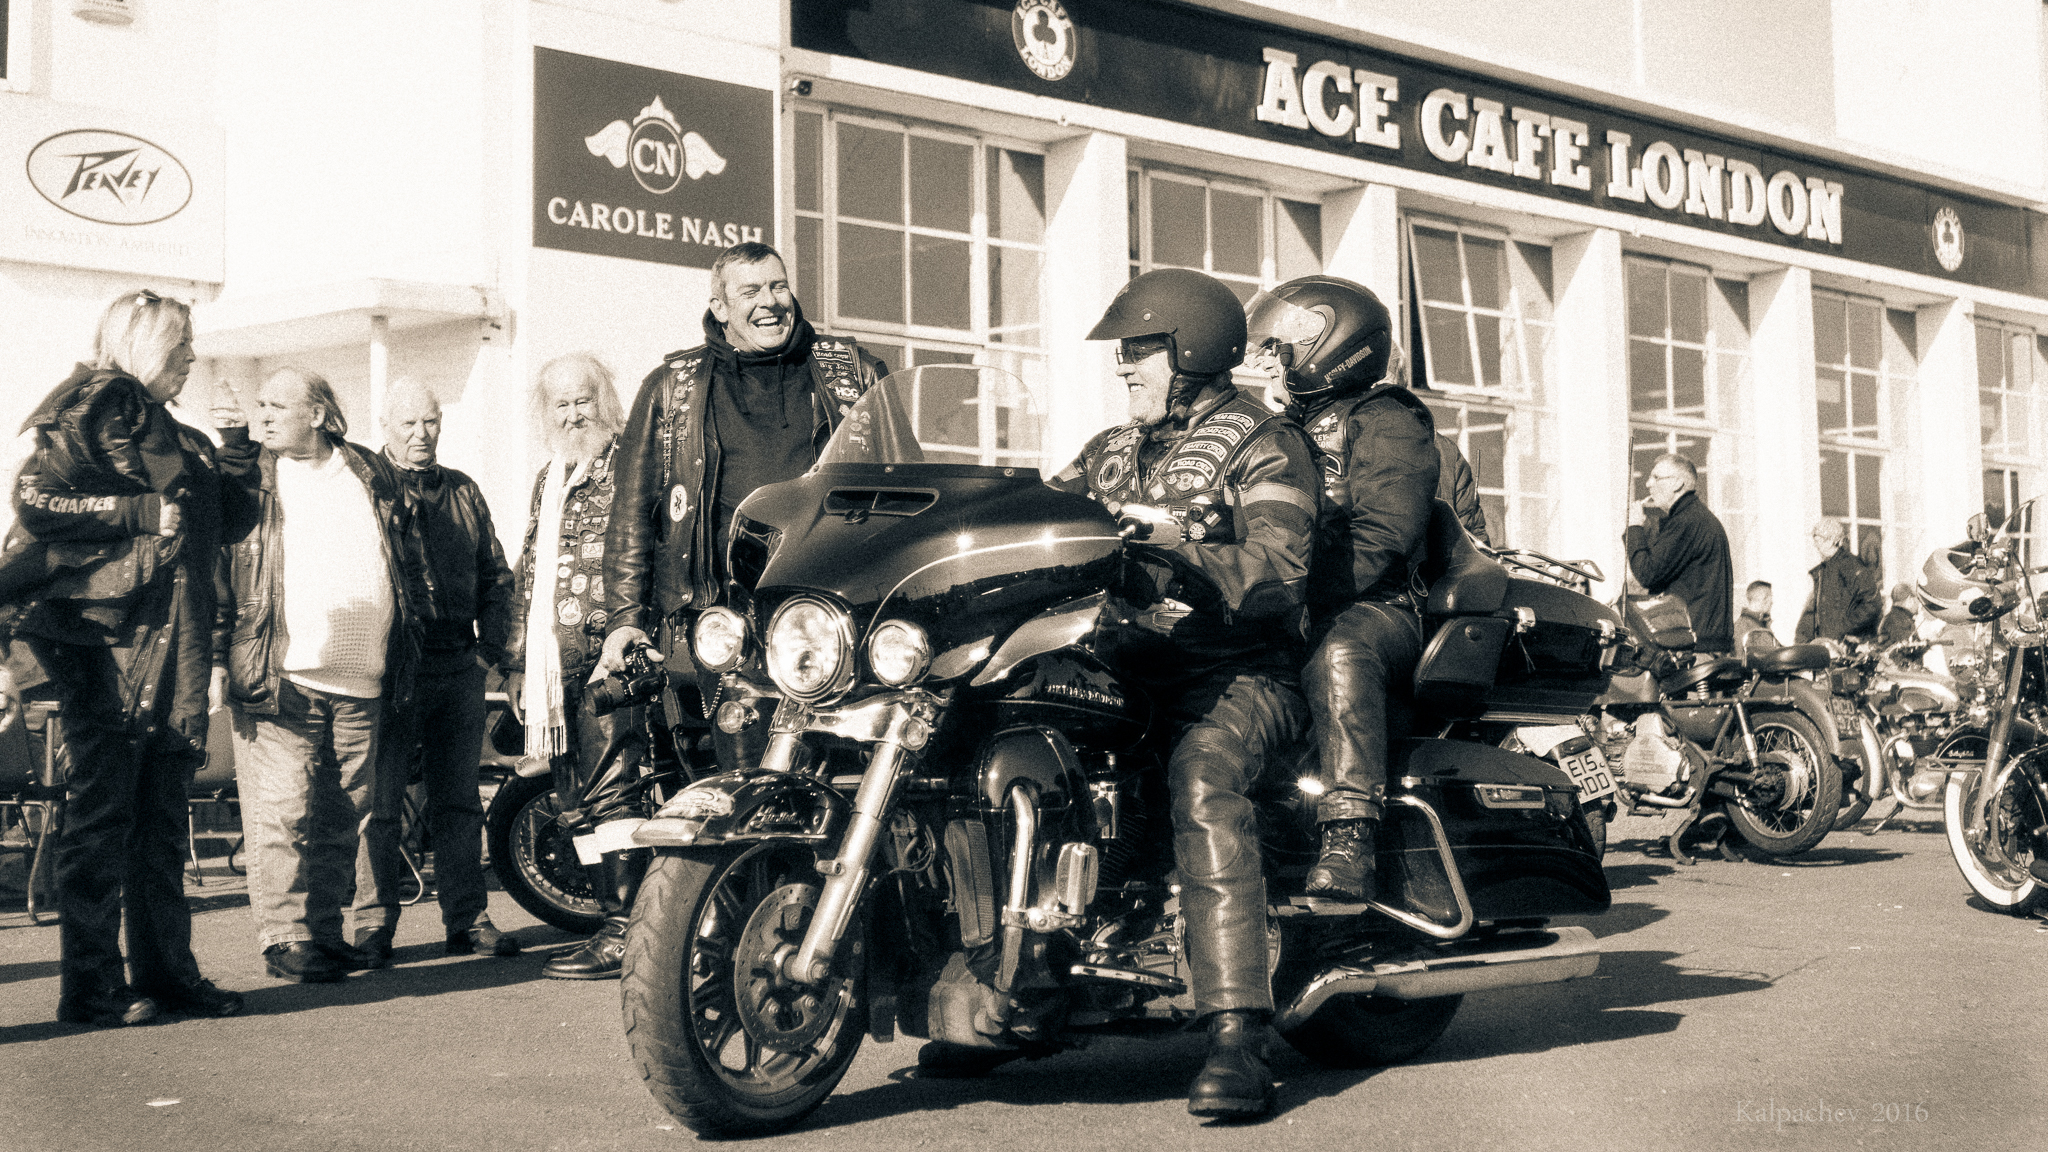 Bike day at Ace Cafe London